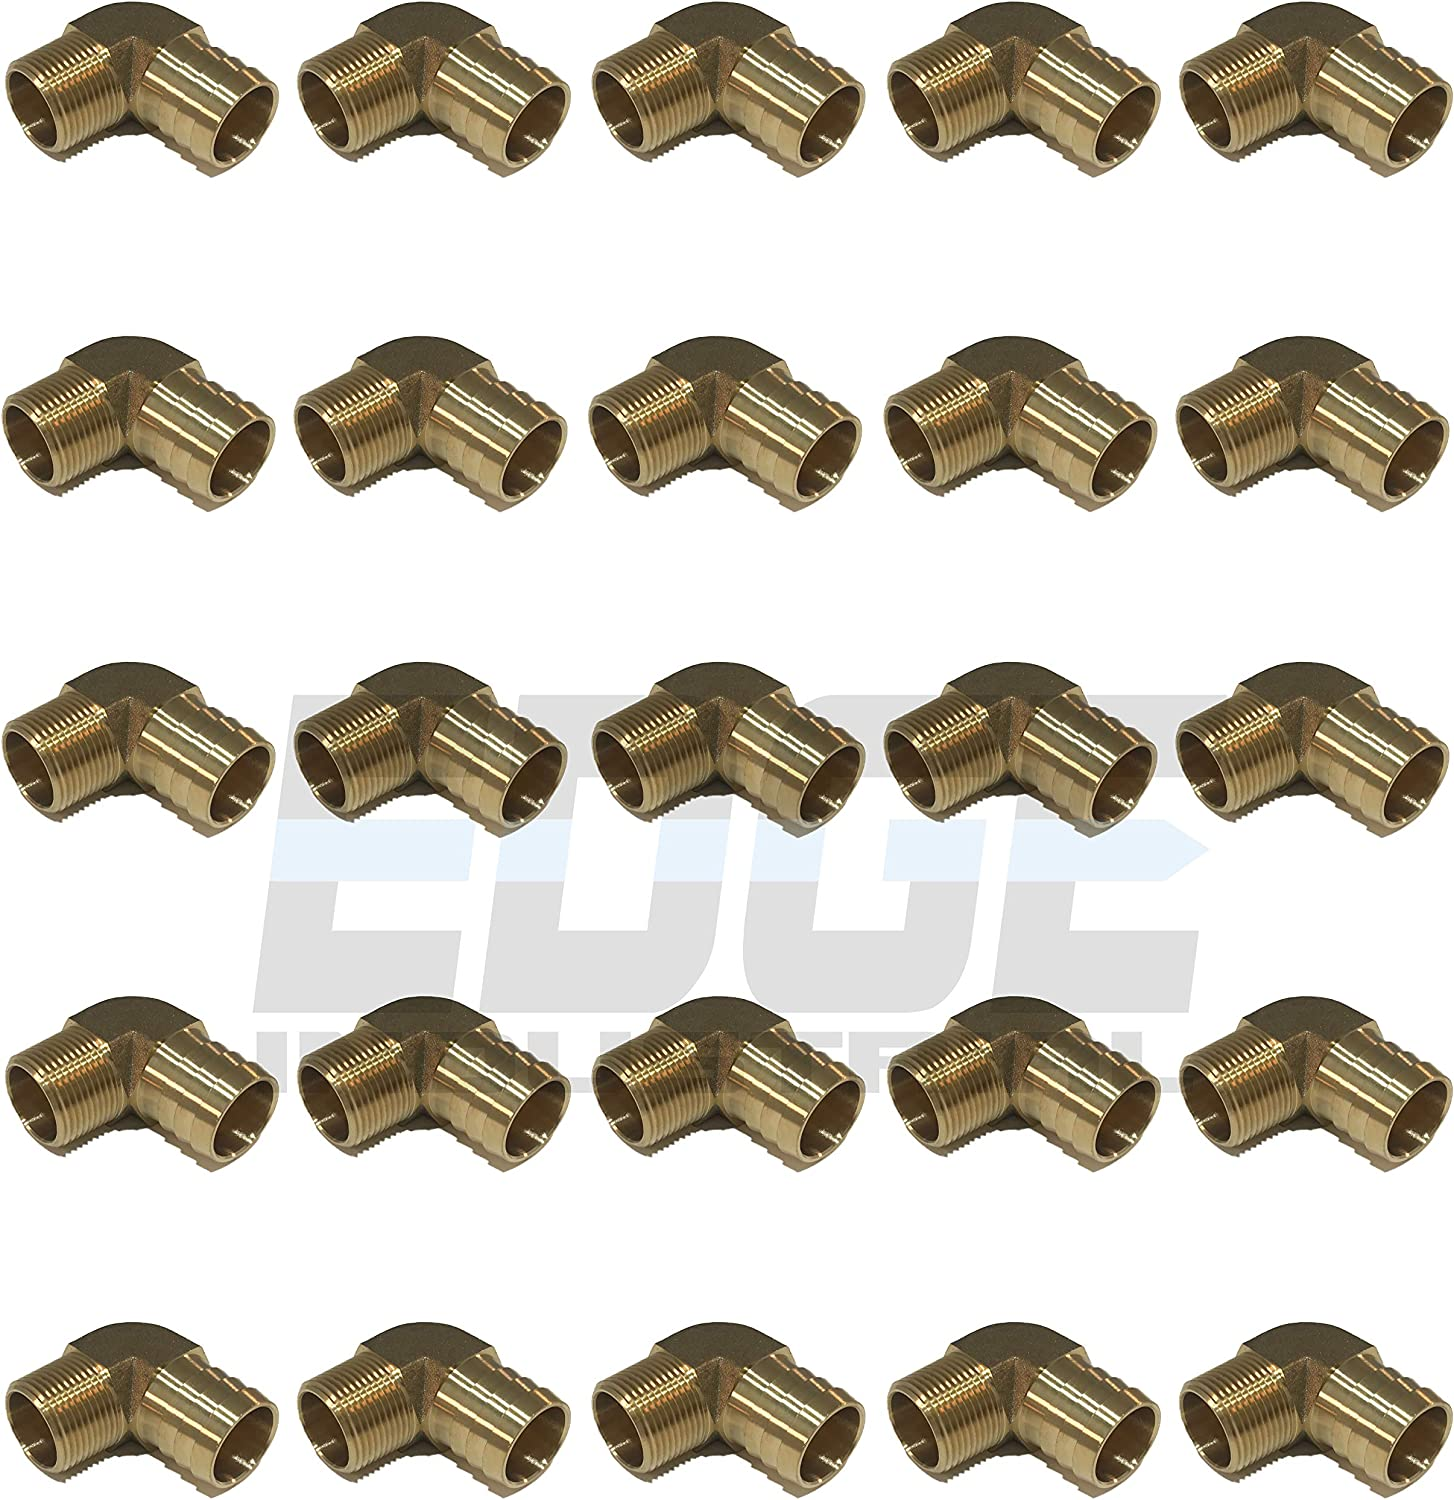 Qty 01 EDGE INDUSTRIAL 1 Hose ID to 3//4 Male NPT MNPT 90 Degree Brass Elbow Fitting Fuel WOG Water Oil Gas AIR